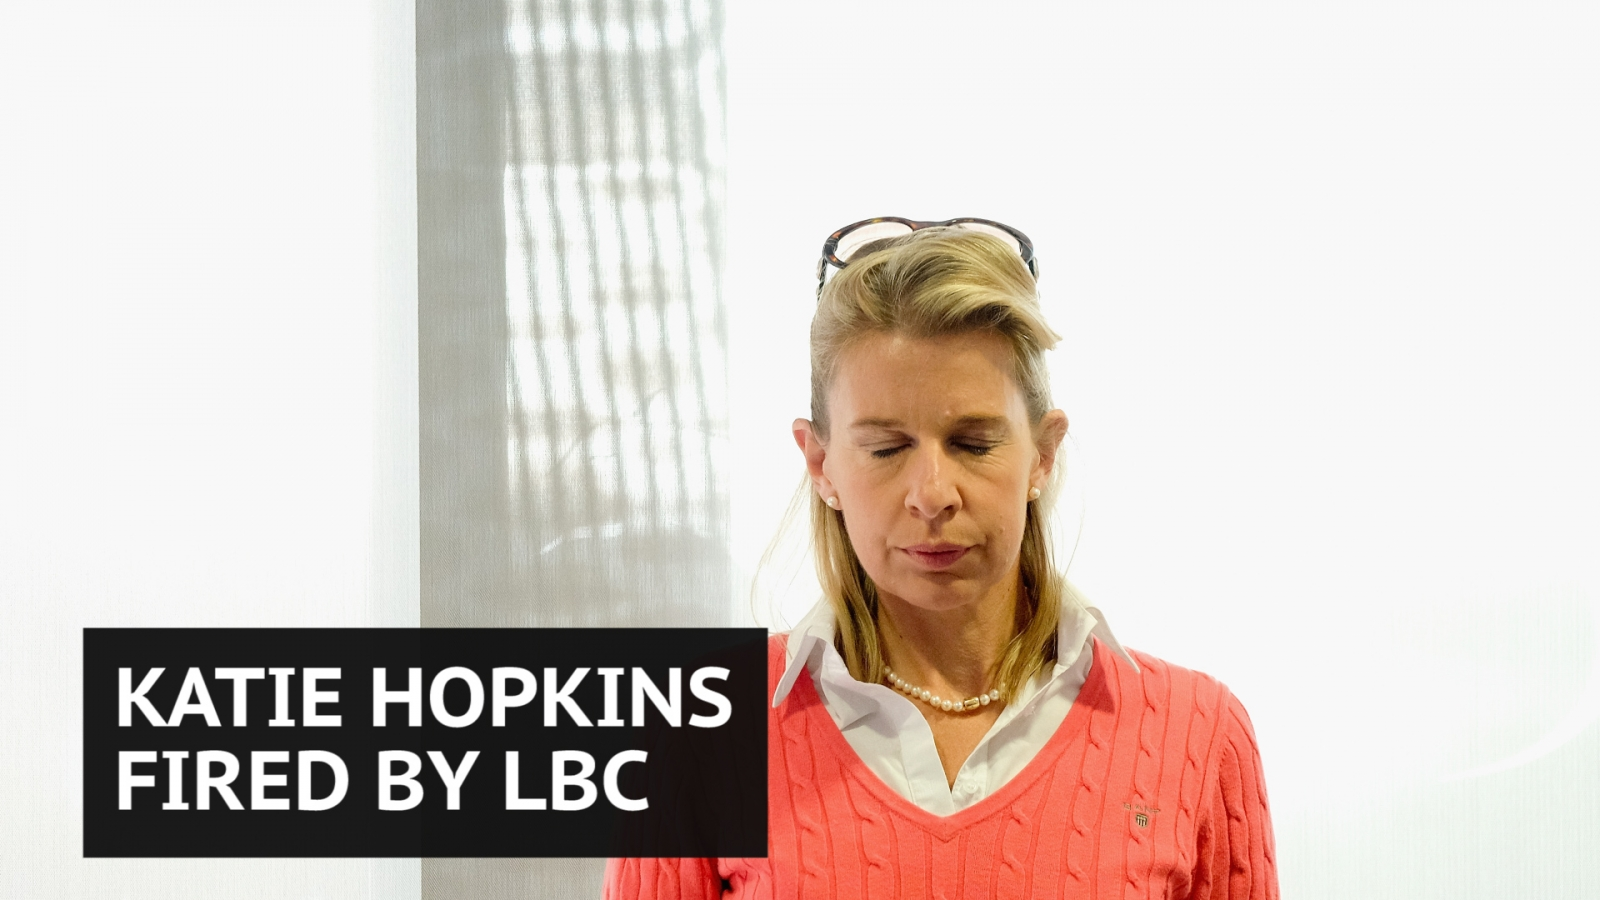 Katie Hopkins fired by LBC after 'final solution' tweet